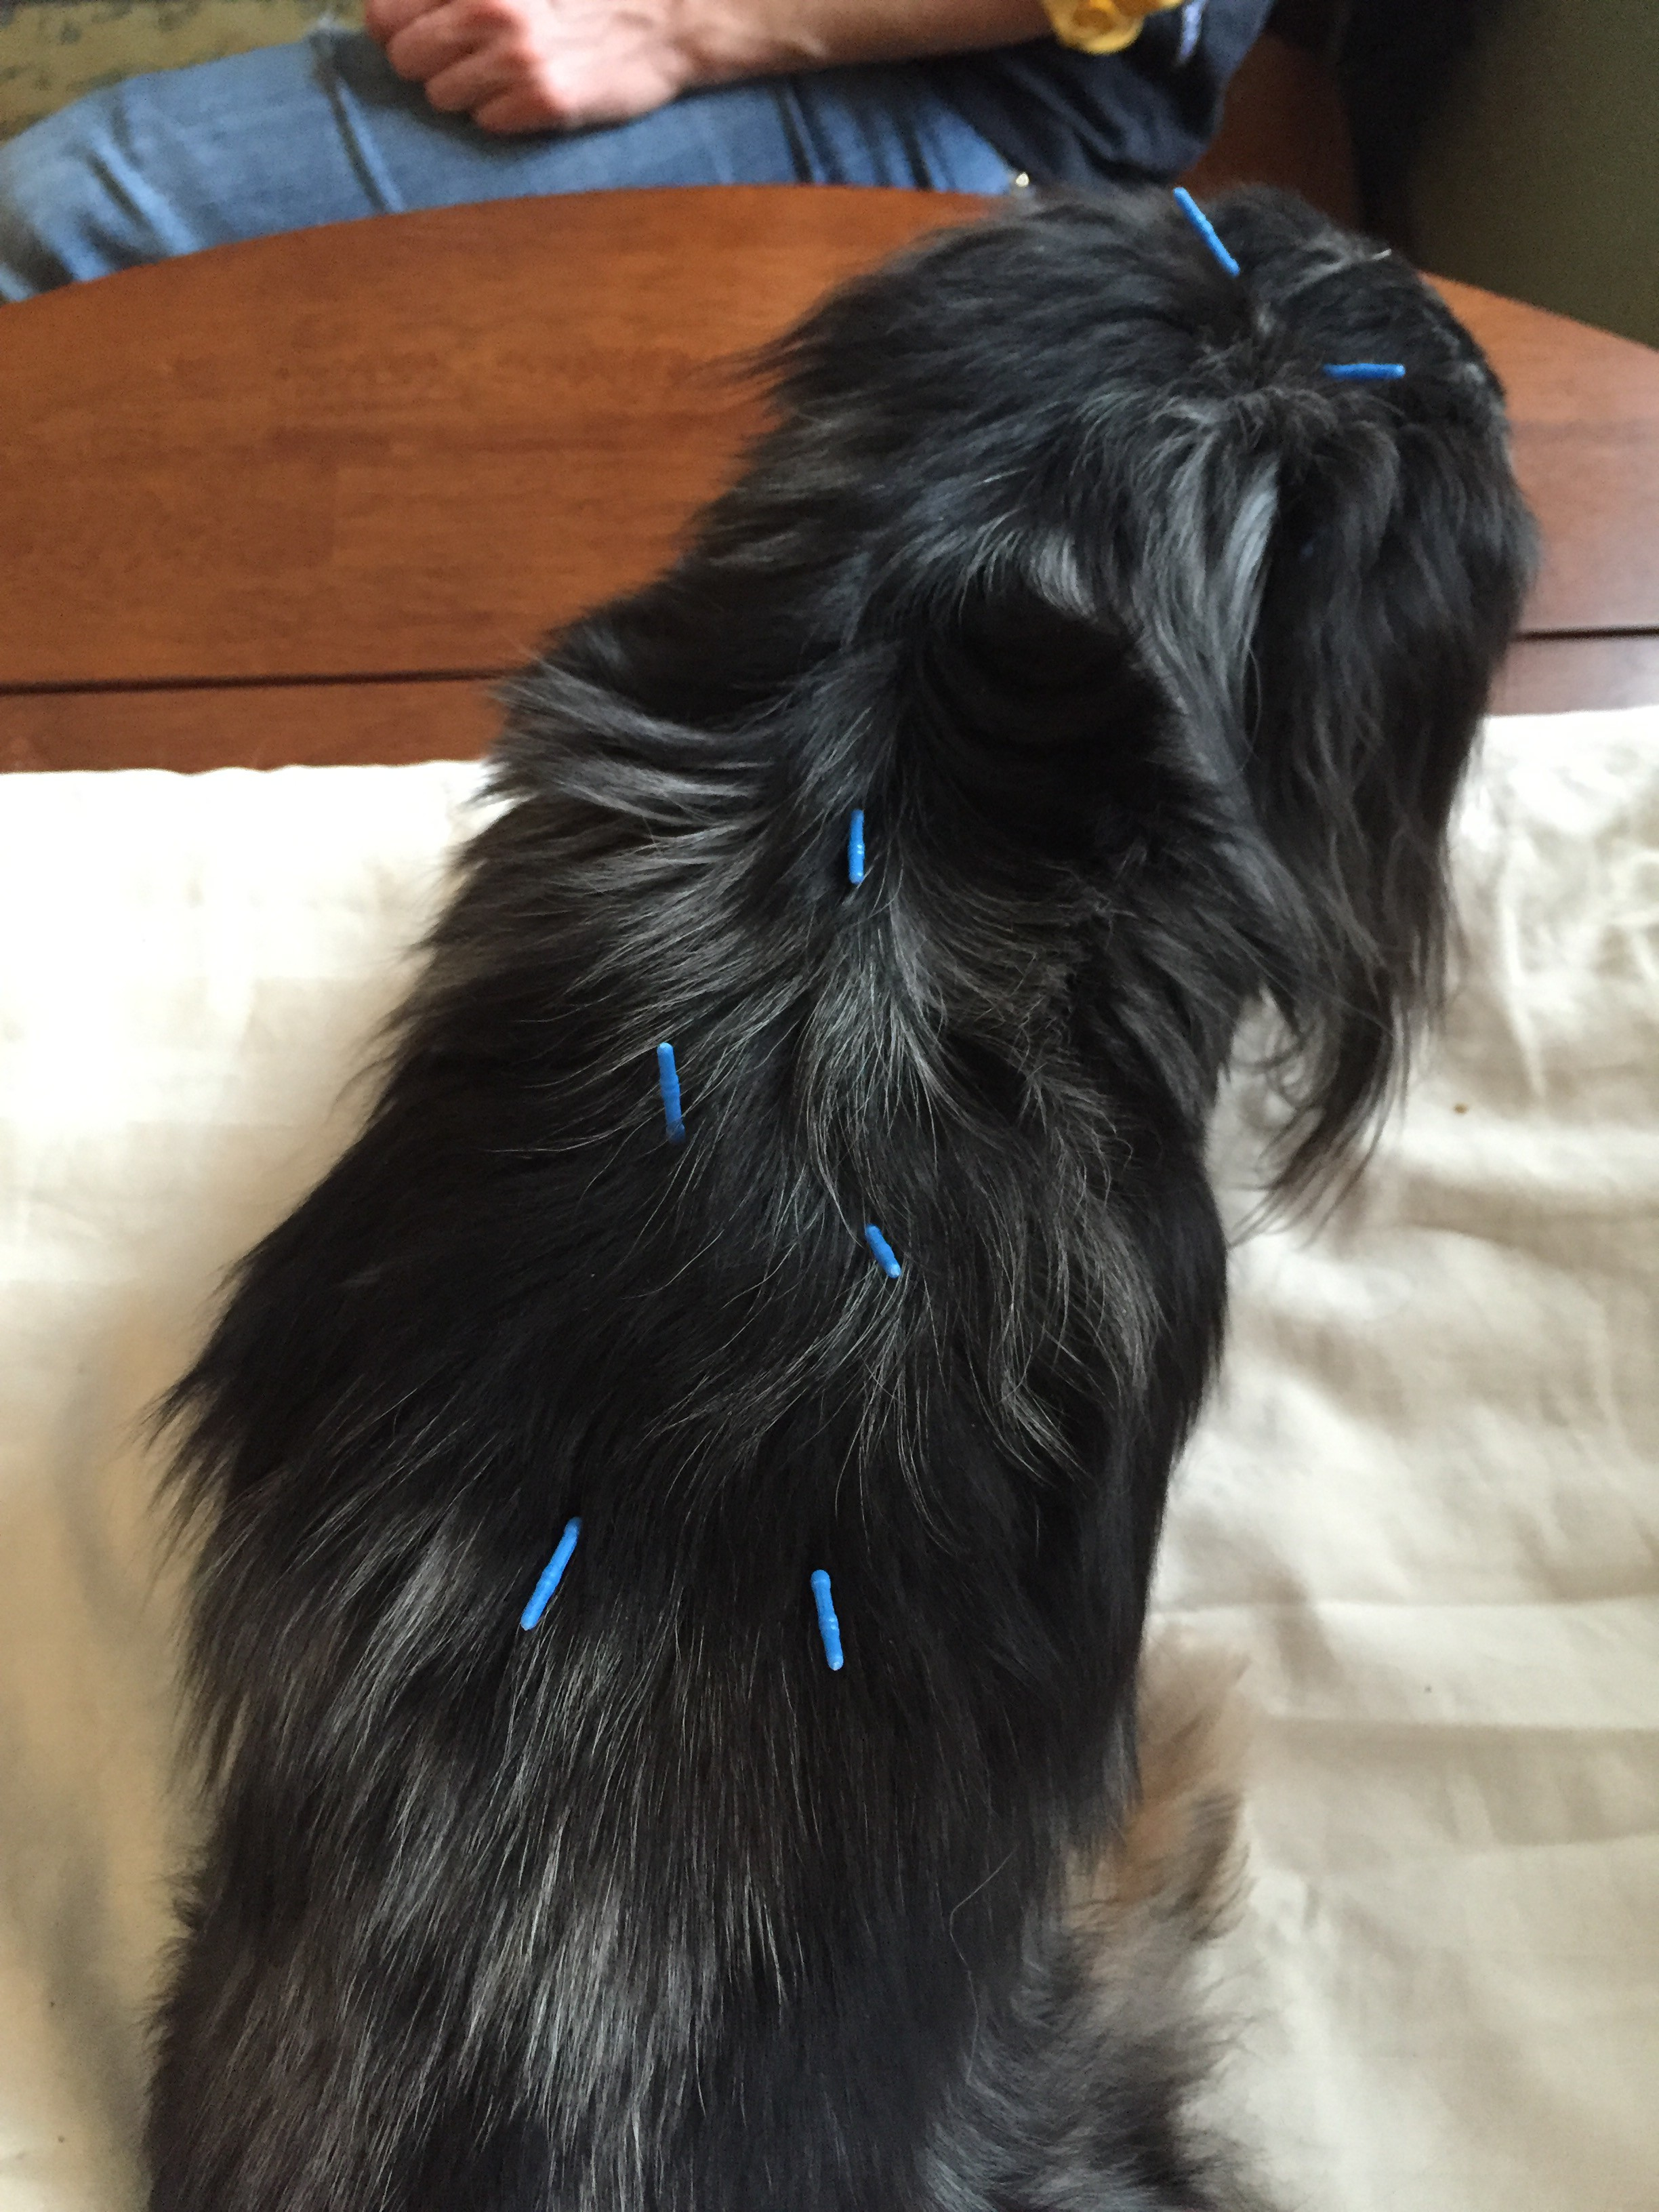 Treating Cats And Dogs With Acupuncture